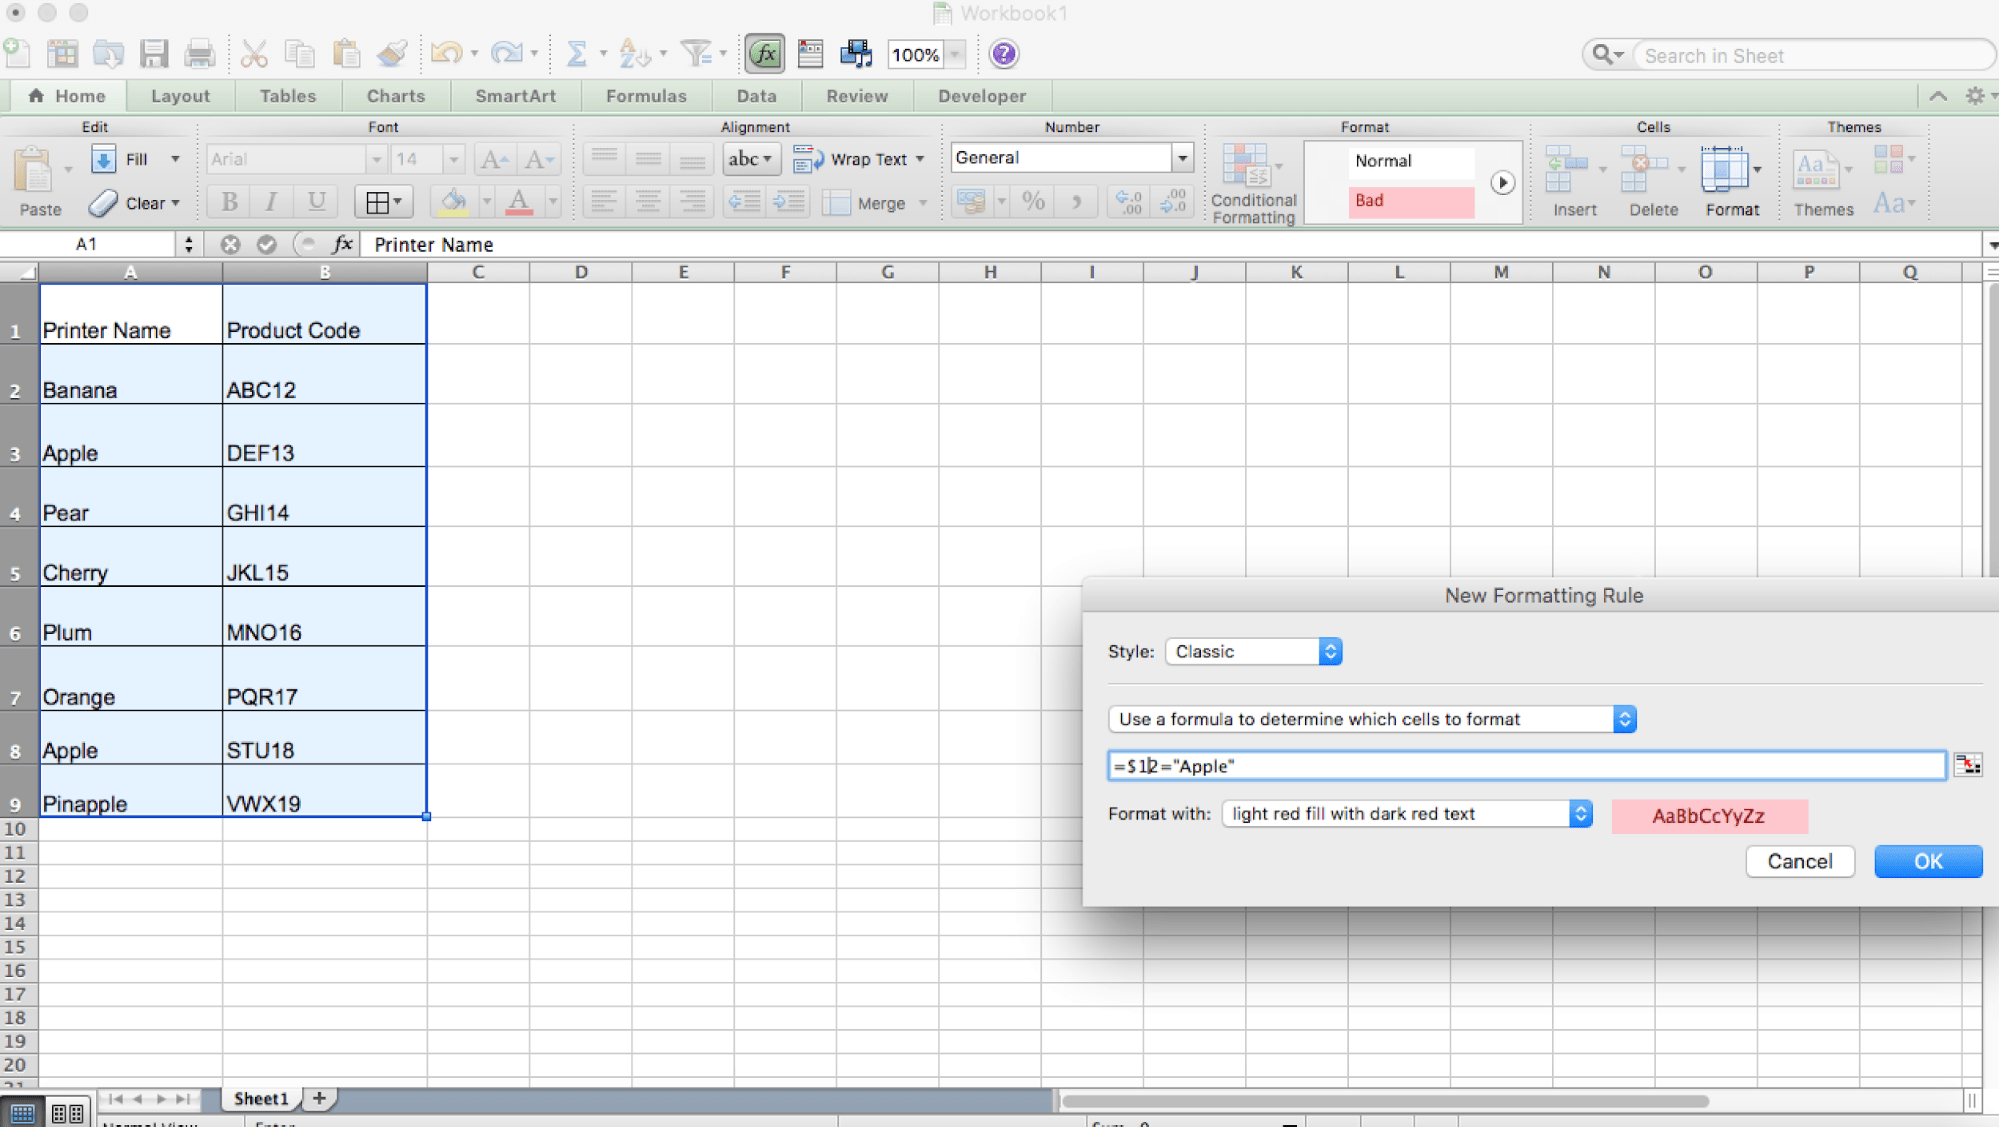 How To Copy The Conditional Format To Another Cell